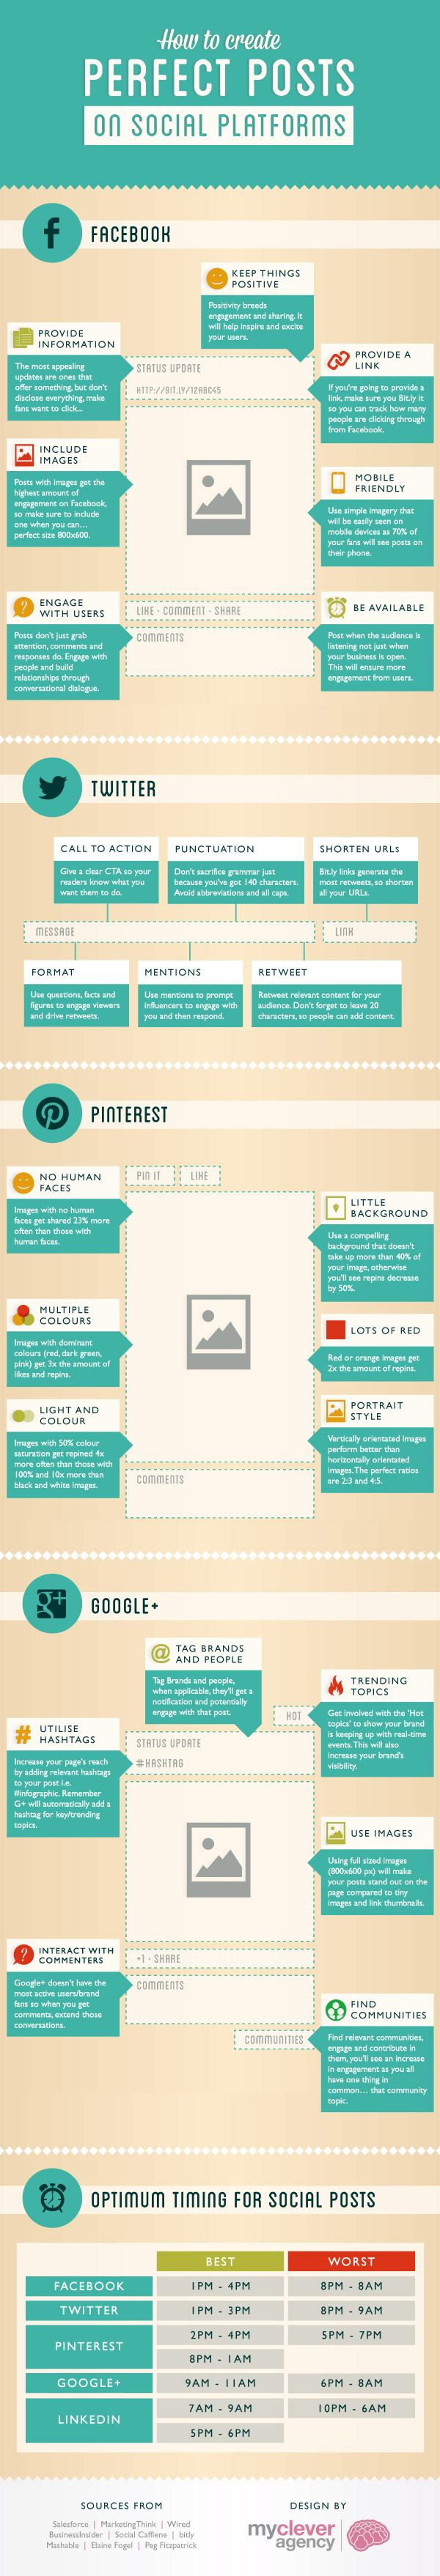 This is great!  A practical guide to what/when to post on your different #socialmedia channels.  Handy!